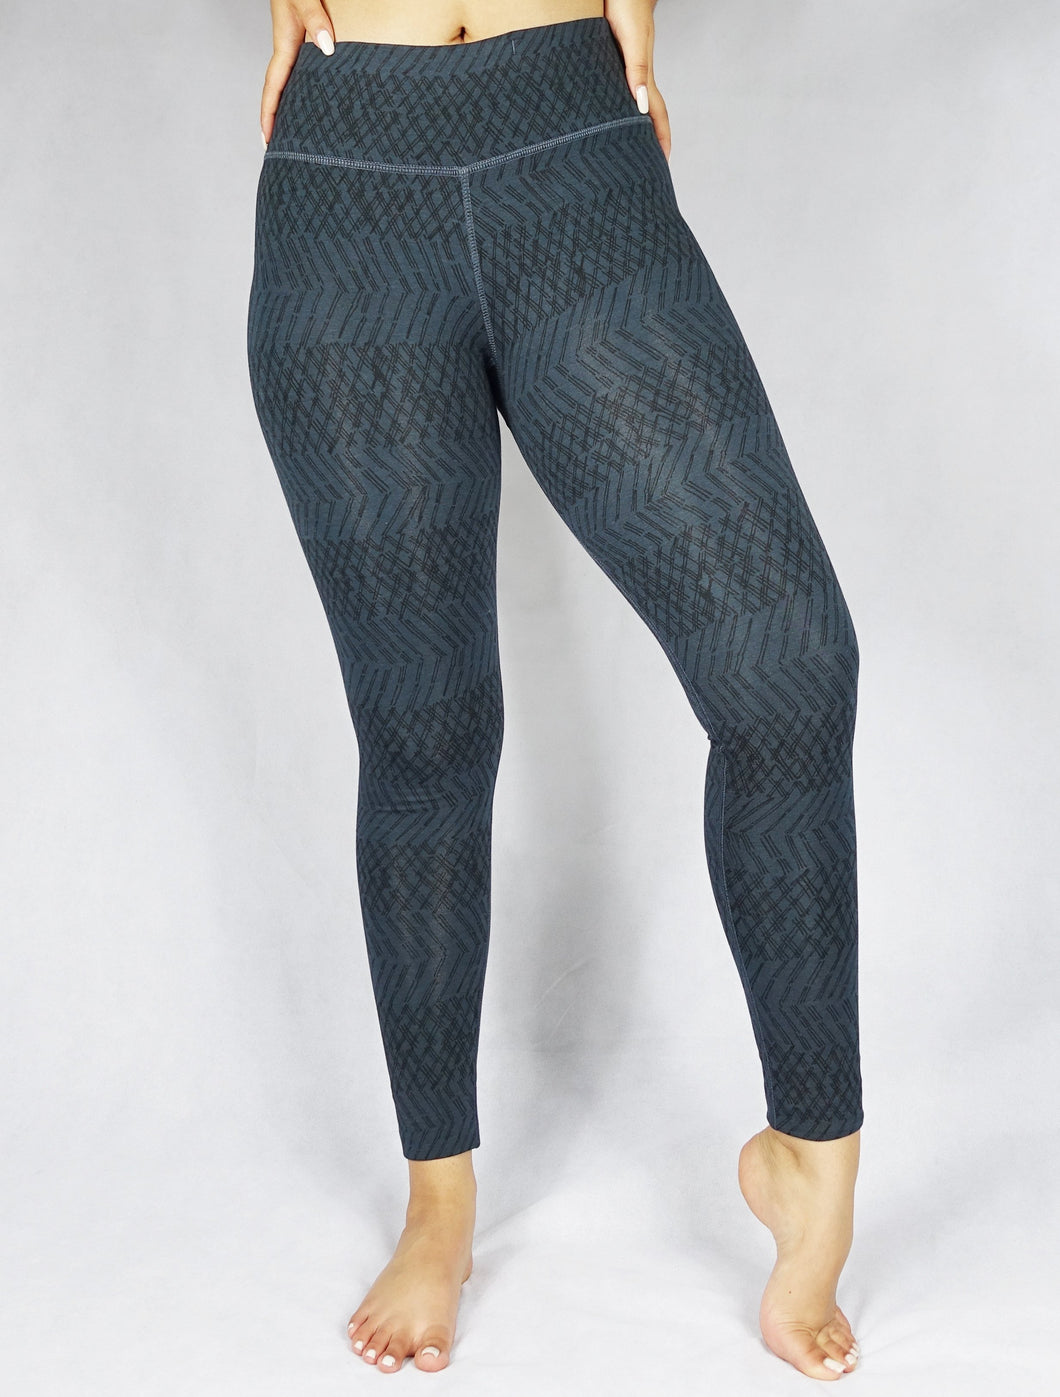 nd more! Enjoy the feeling of softness and comfort with natural bamboo fibres. The Wear Organic compression leggings and activewear are designed for the ultimate performance.